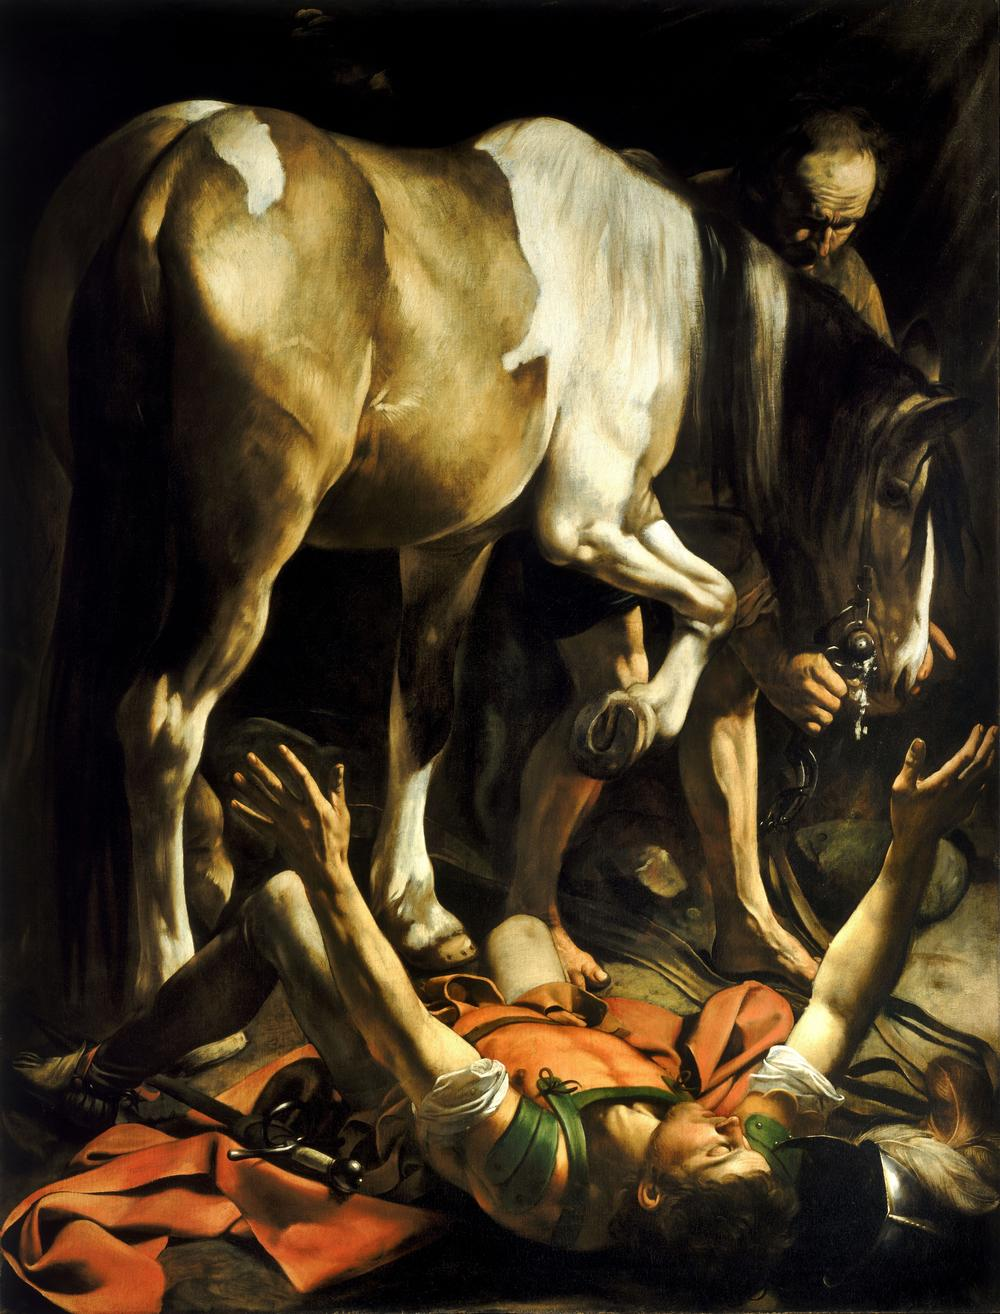 Conversion_on_the_Way_to_Damascus-Caravaggio_(c.1600-1).jpg